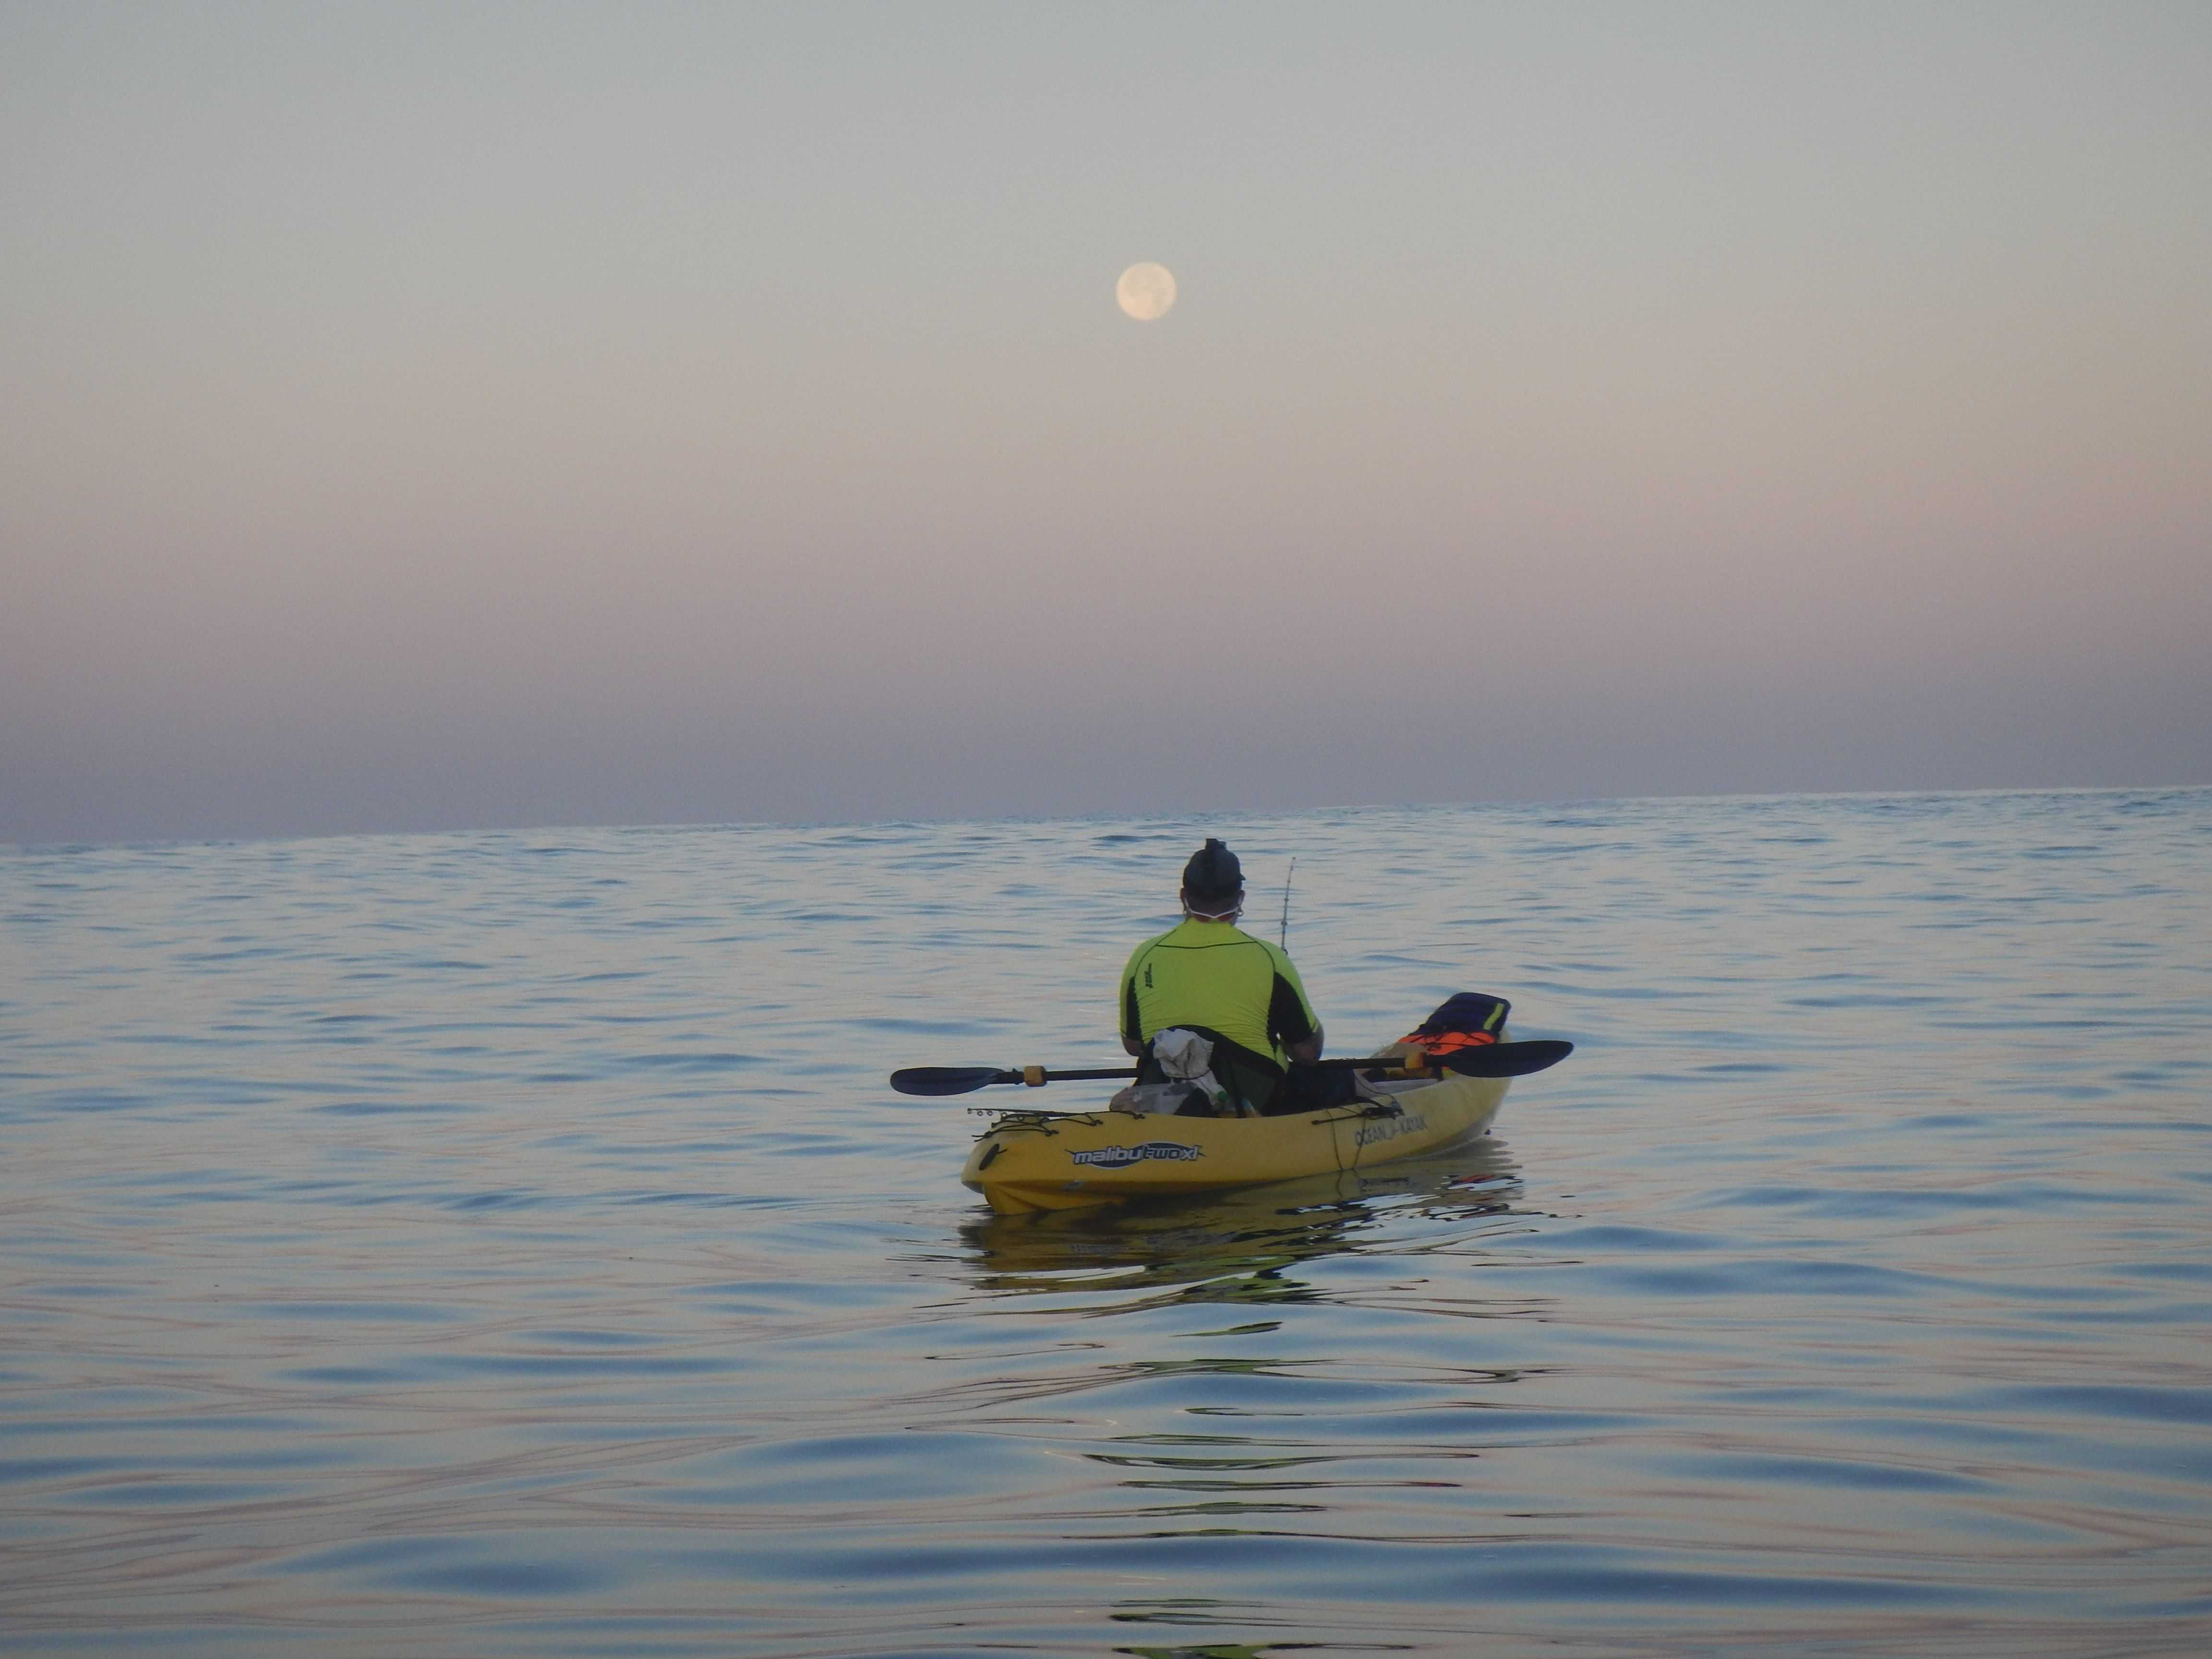 Costa Rica Kayak Fishing: The Past, Present and Future